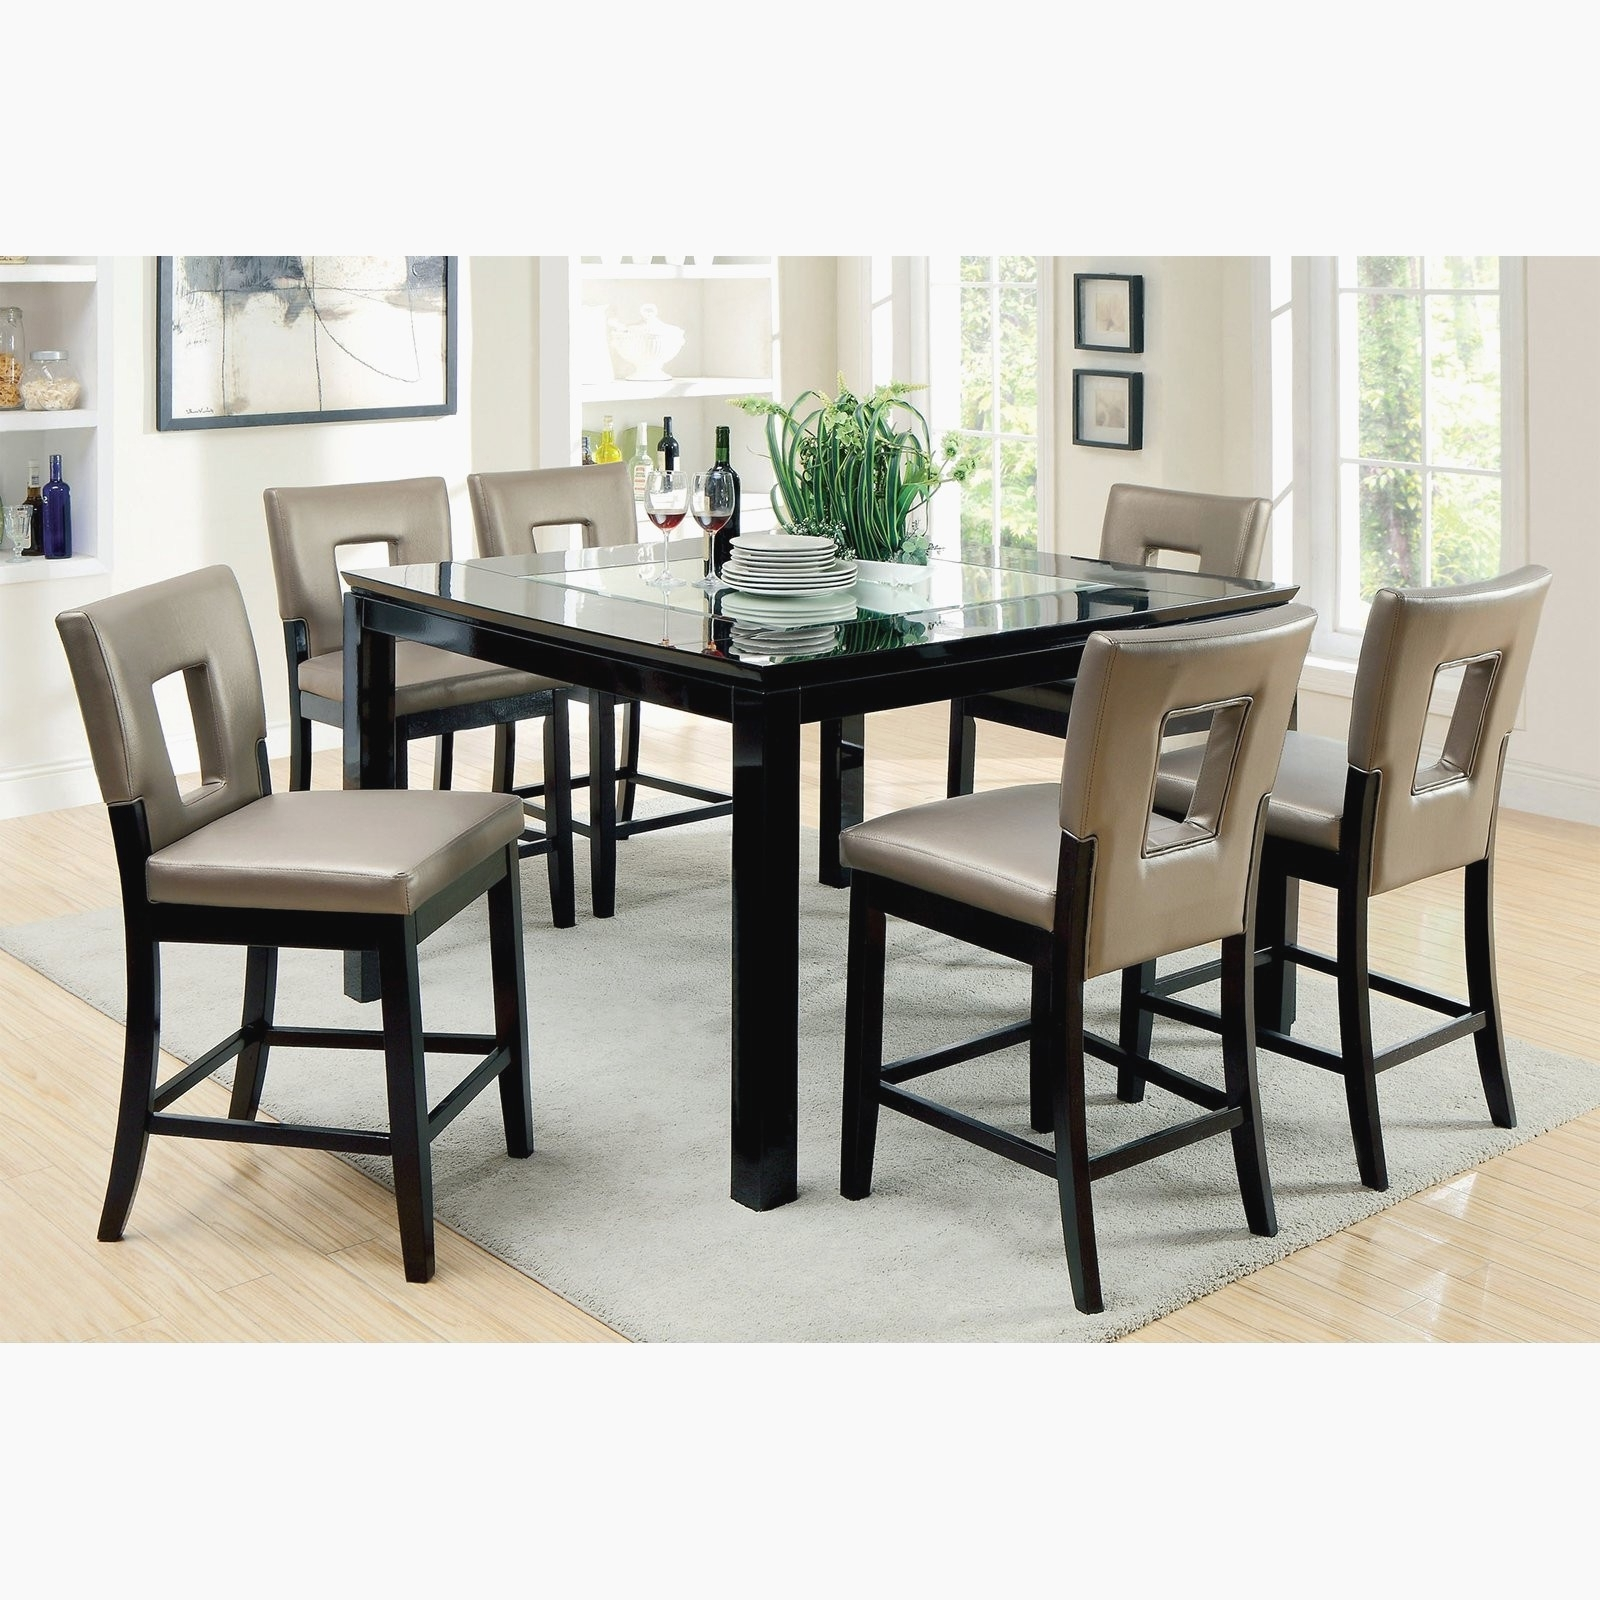 Newest Square Black Glass Dining Tables inside Black And Glass Dining Table Luxury Dining Table Square Glass Dining